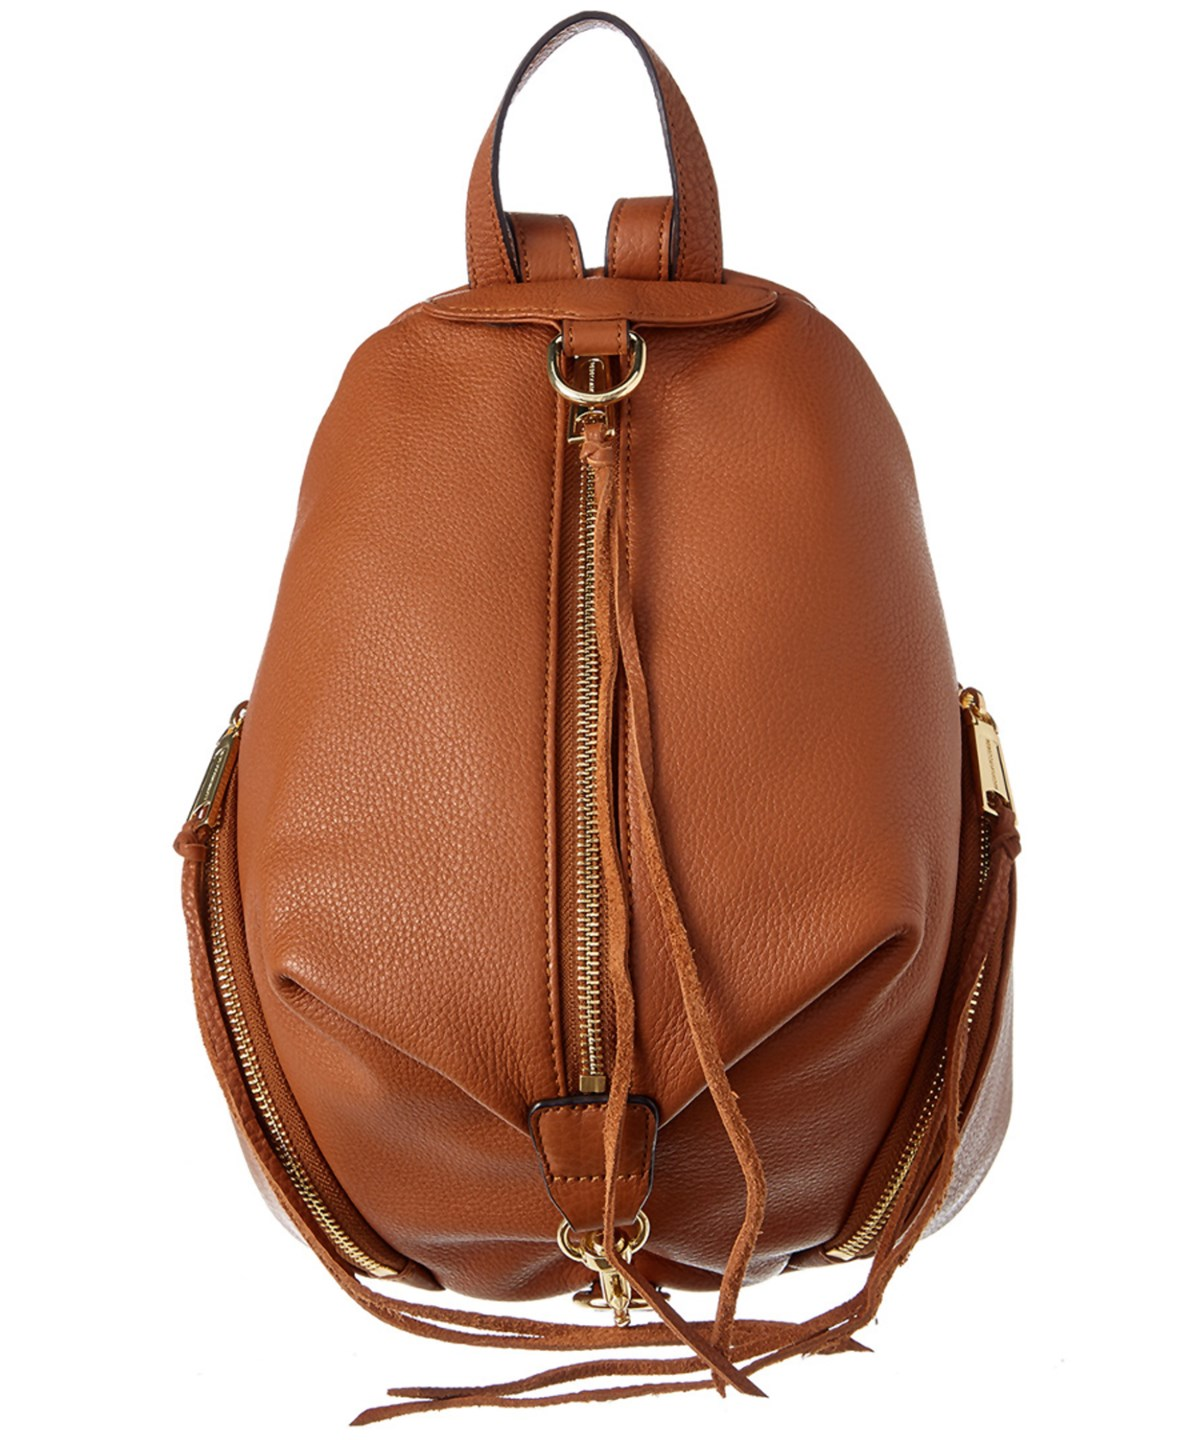 REBECCA MINKOFF Julian Medium Leather Backpack' in Tan